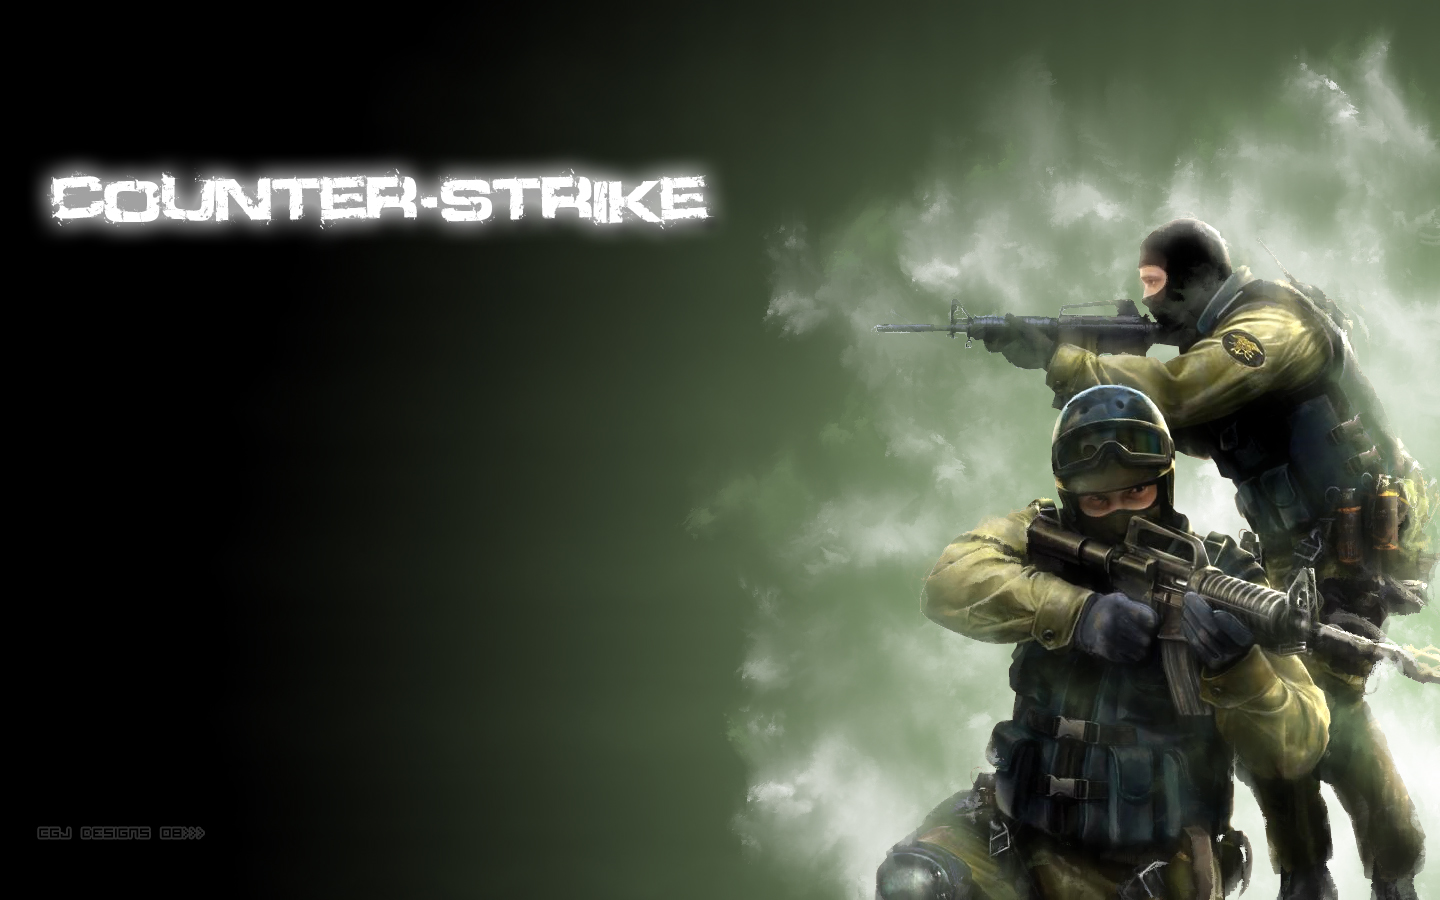 Wallpapers Counter-Strike [HD] | Mega Walls Games Counter Strike Wallpaper Hd